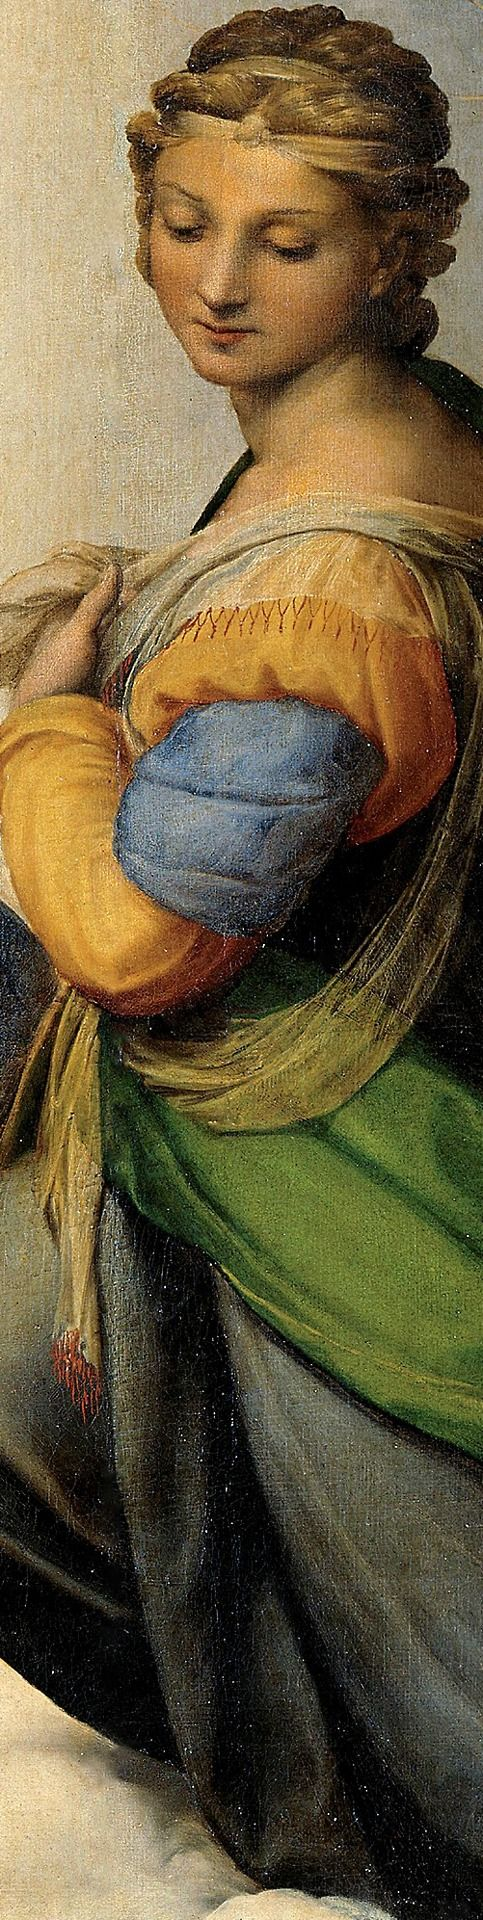 NOT A Detail of - The Birth of Venus by Rafael. THIS IS a detail of The Sistine Madonna, also called the Madonna di San Sisto, an oil painting by the Italian artist Raffaello Sanzio (Rafael)